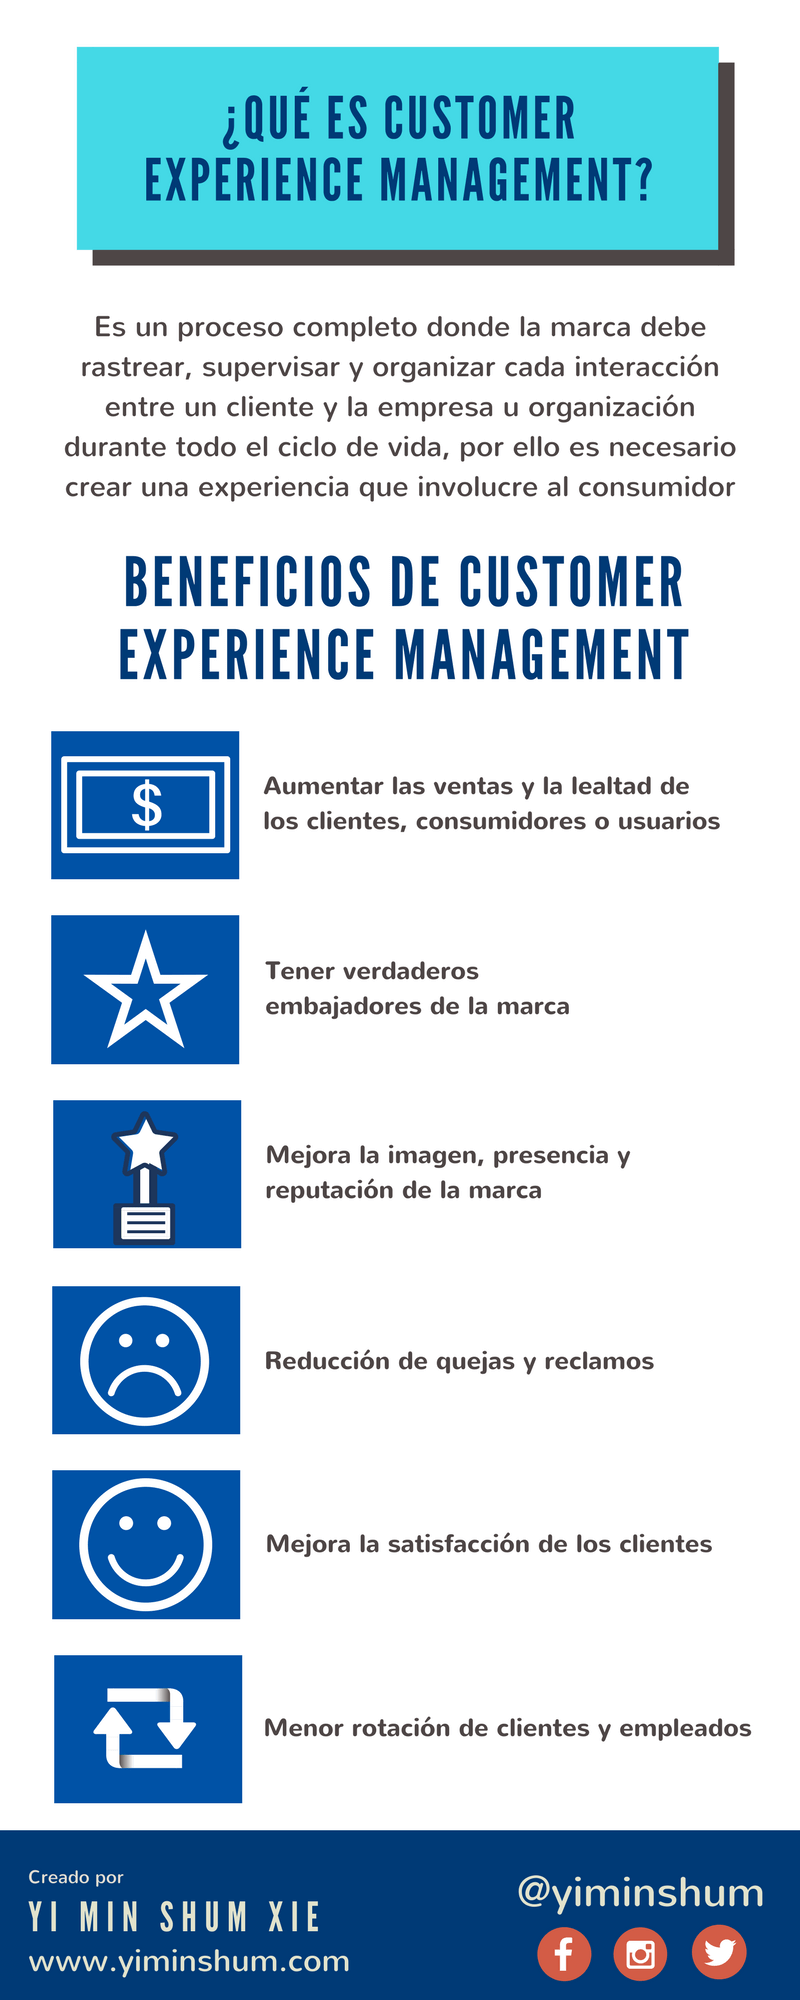 Qué es Customer Experience Management